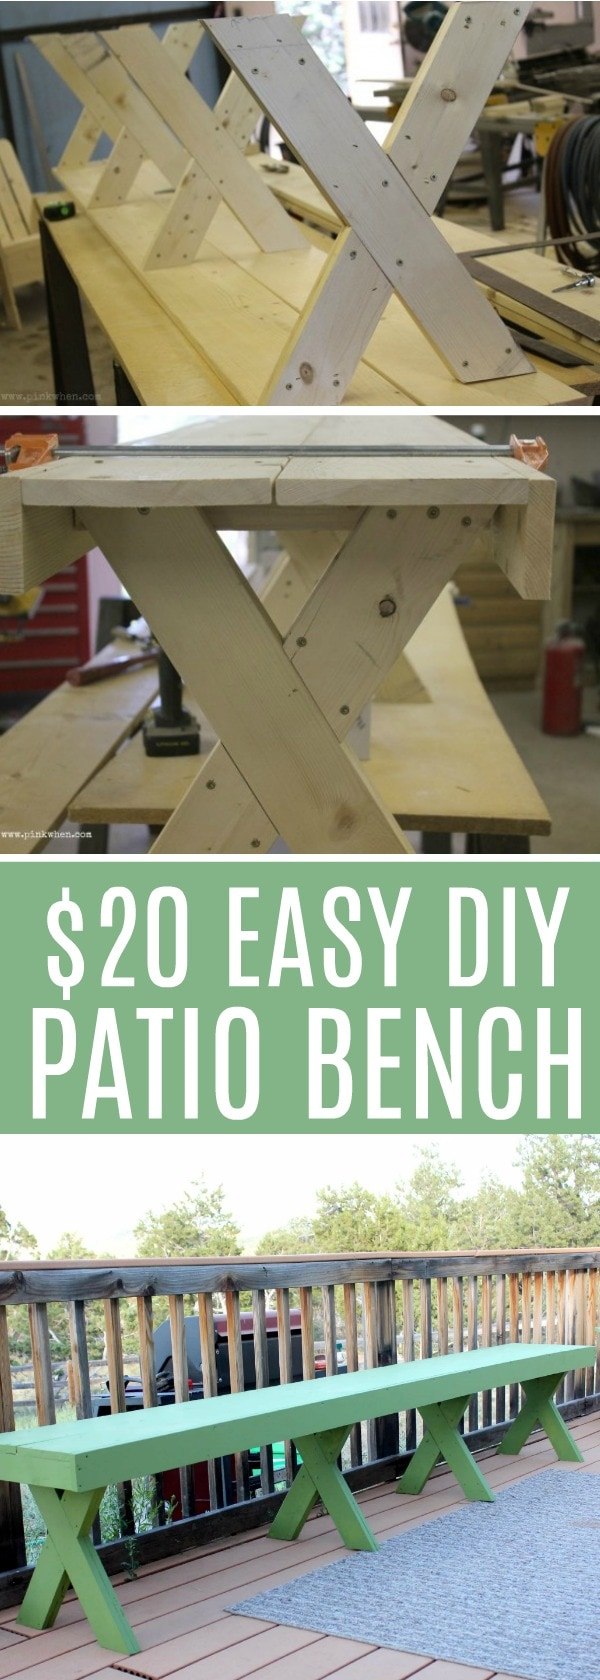 Check out this $20 easy DIY Patio Bench. I feel a project starting...